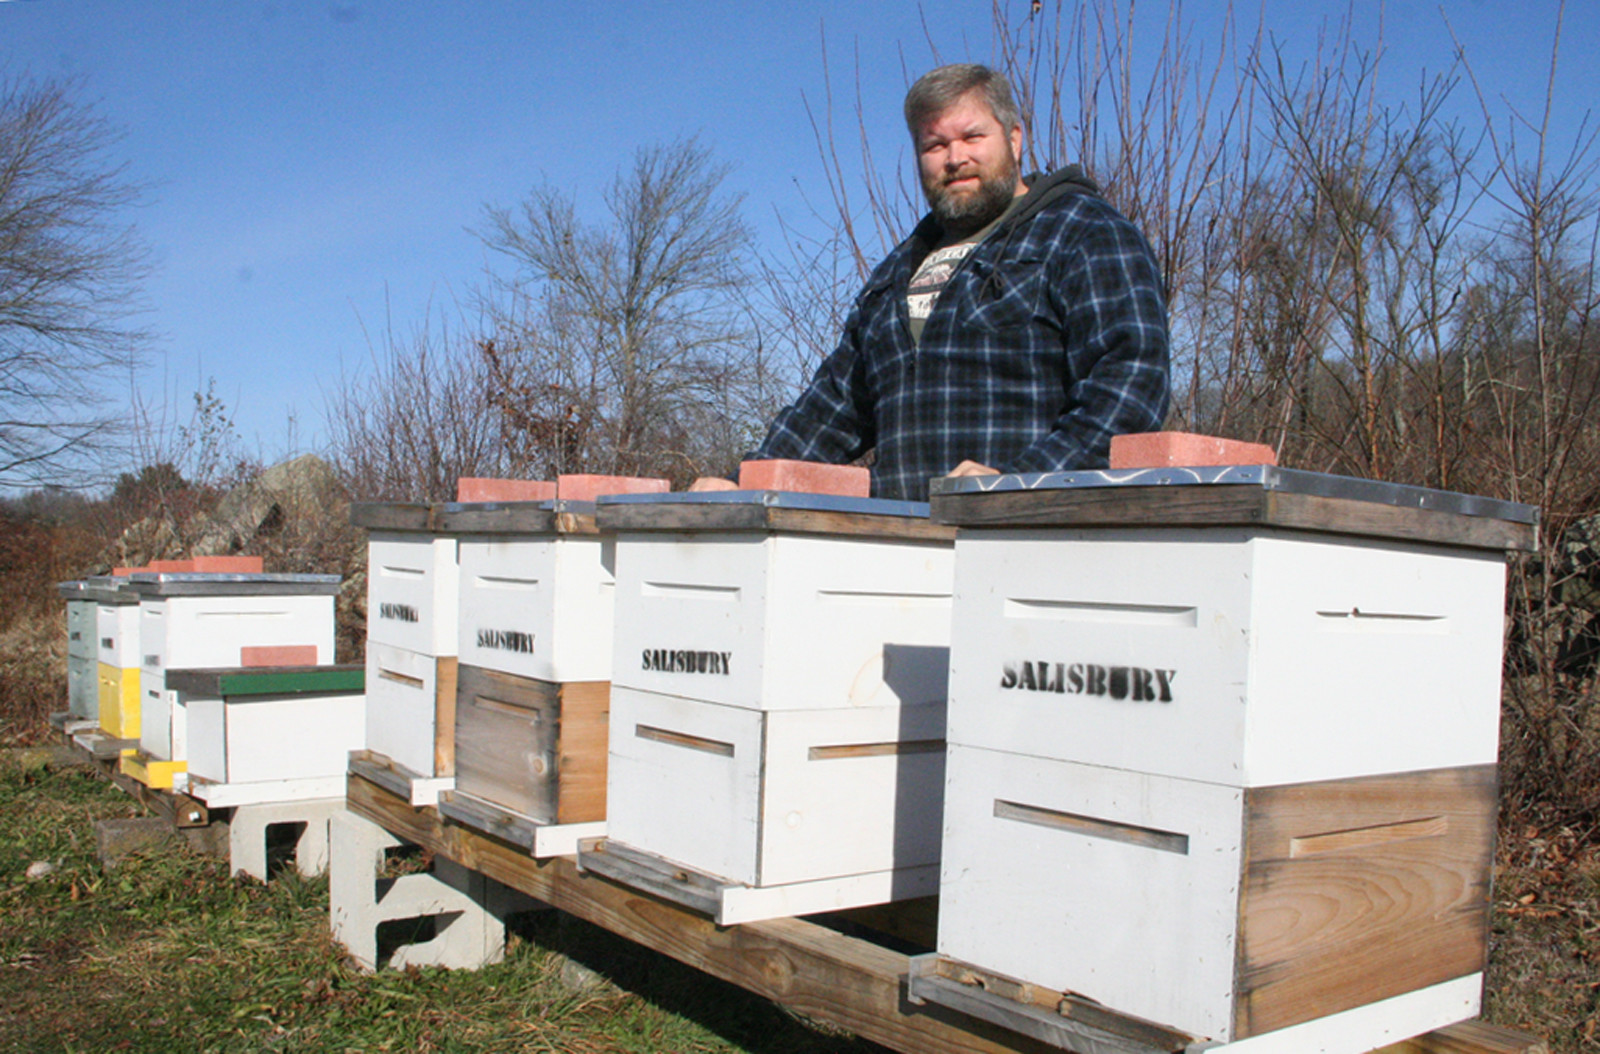 Keith Salisbury, president of the Rhode Island Beekeeping Association, checked on his hives Dec. 11 expecting to find them dormant. A few solitary bees were venturing out and, as he found in one hive, bees were eating into the sugar that he provides for them to get through the winter.